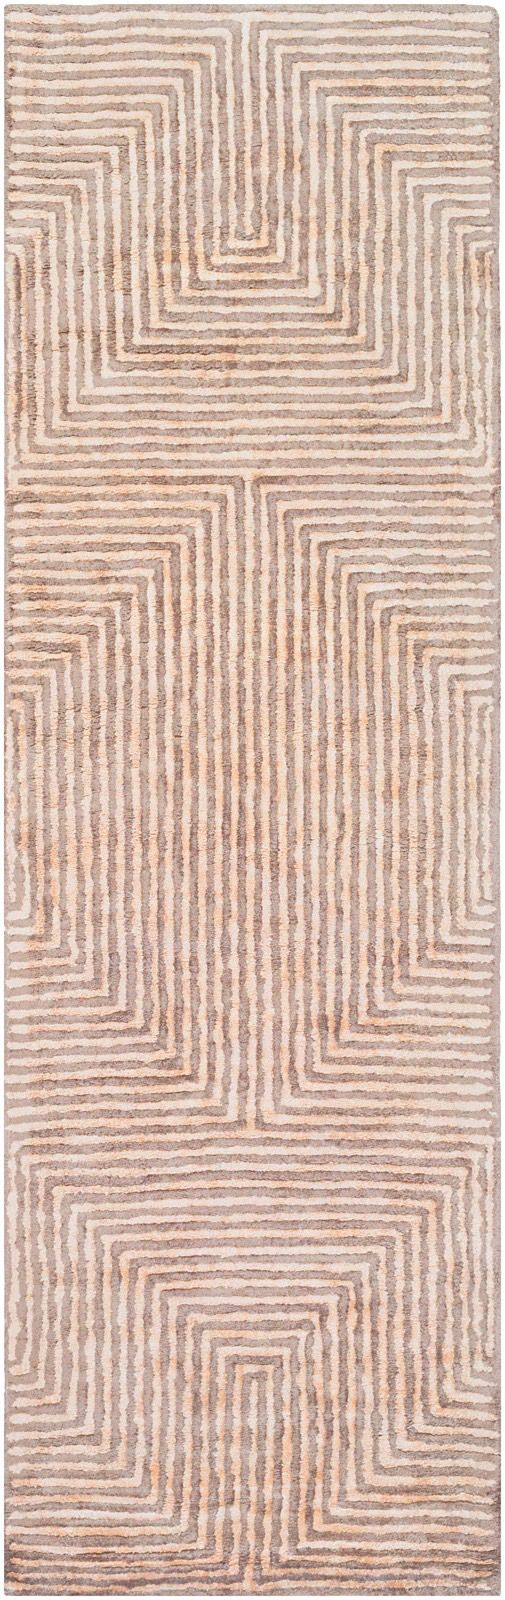 surya quartz contemporary area rug collection